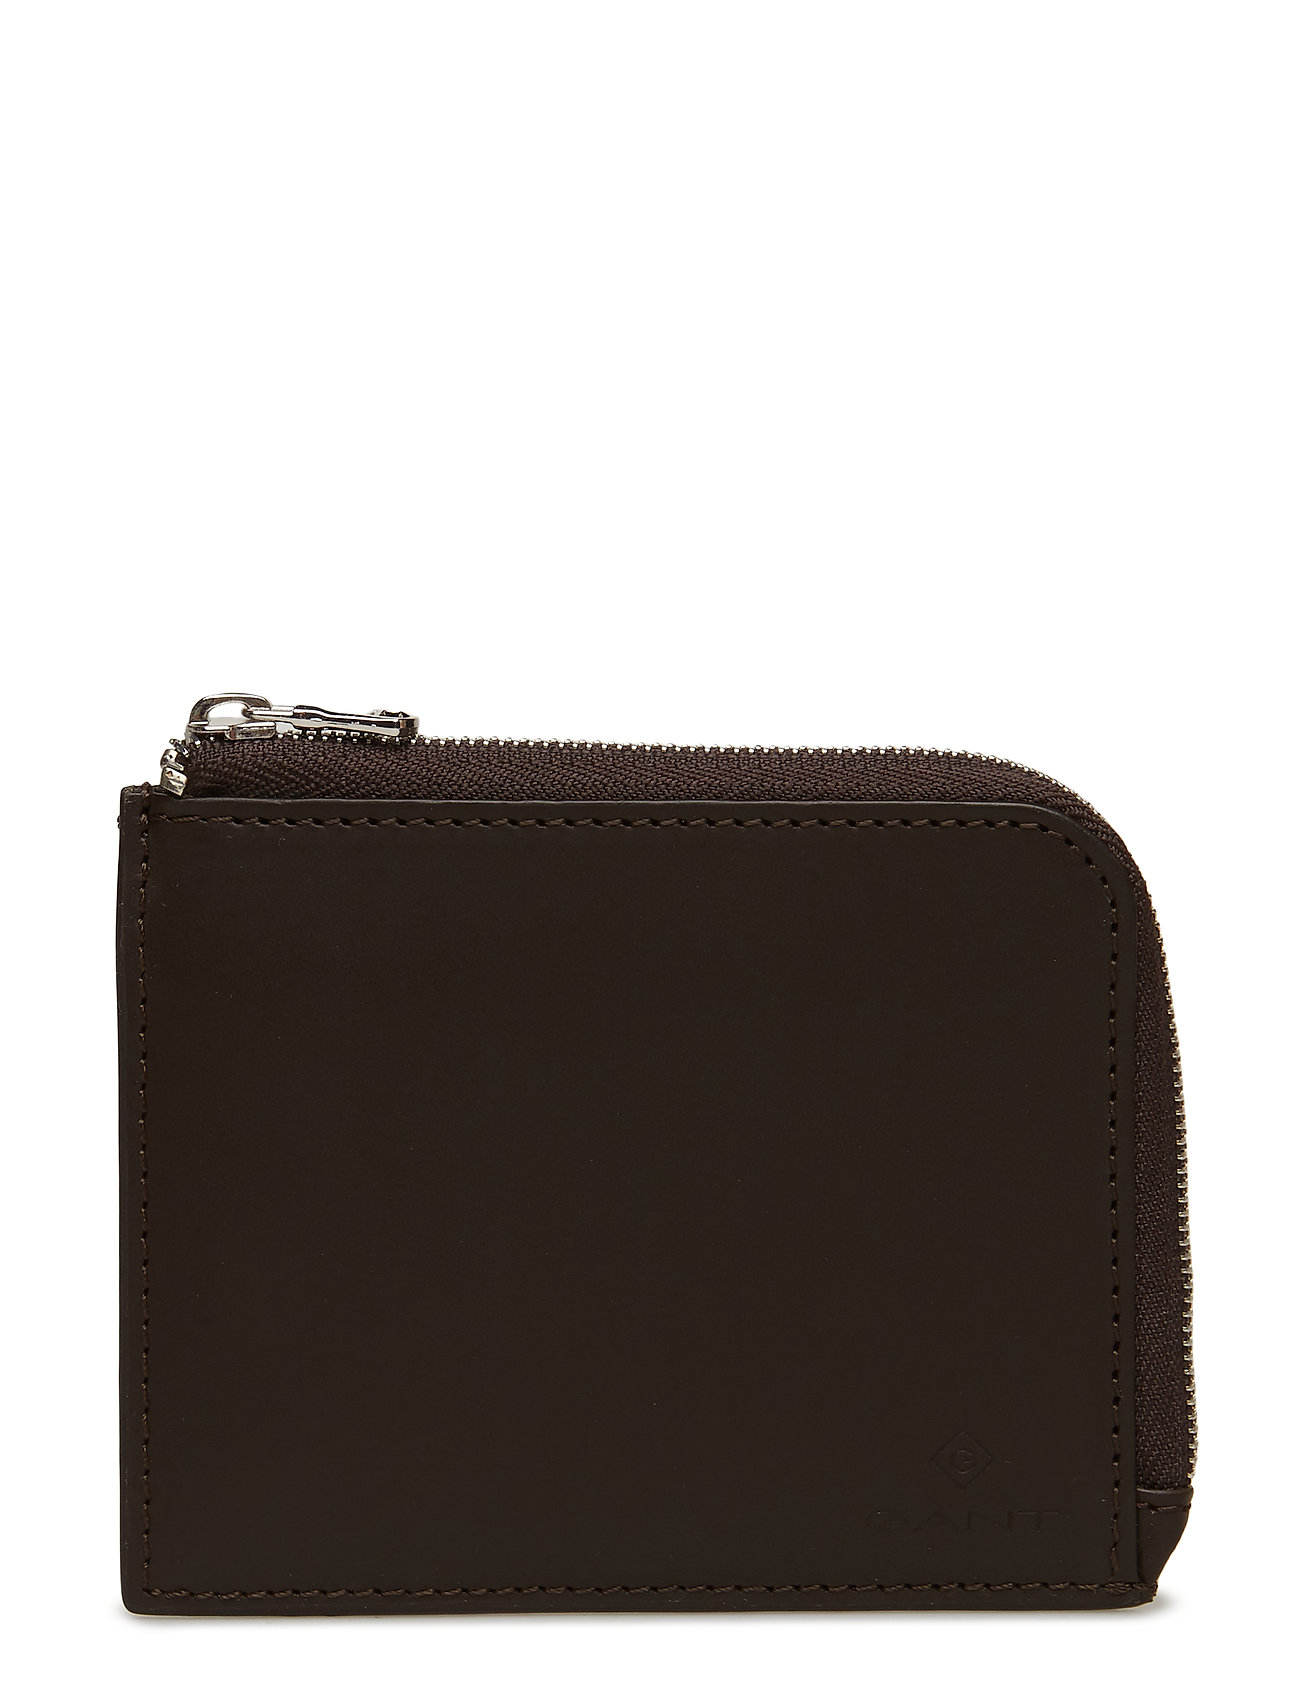 GANT LEATHER ZIP WALLET